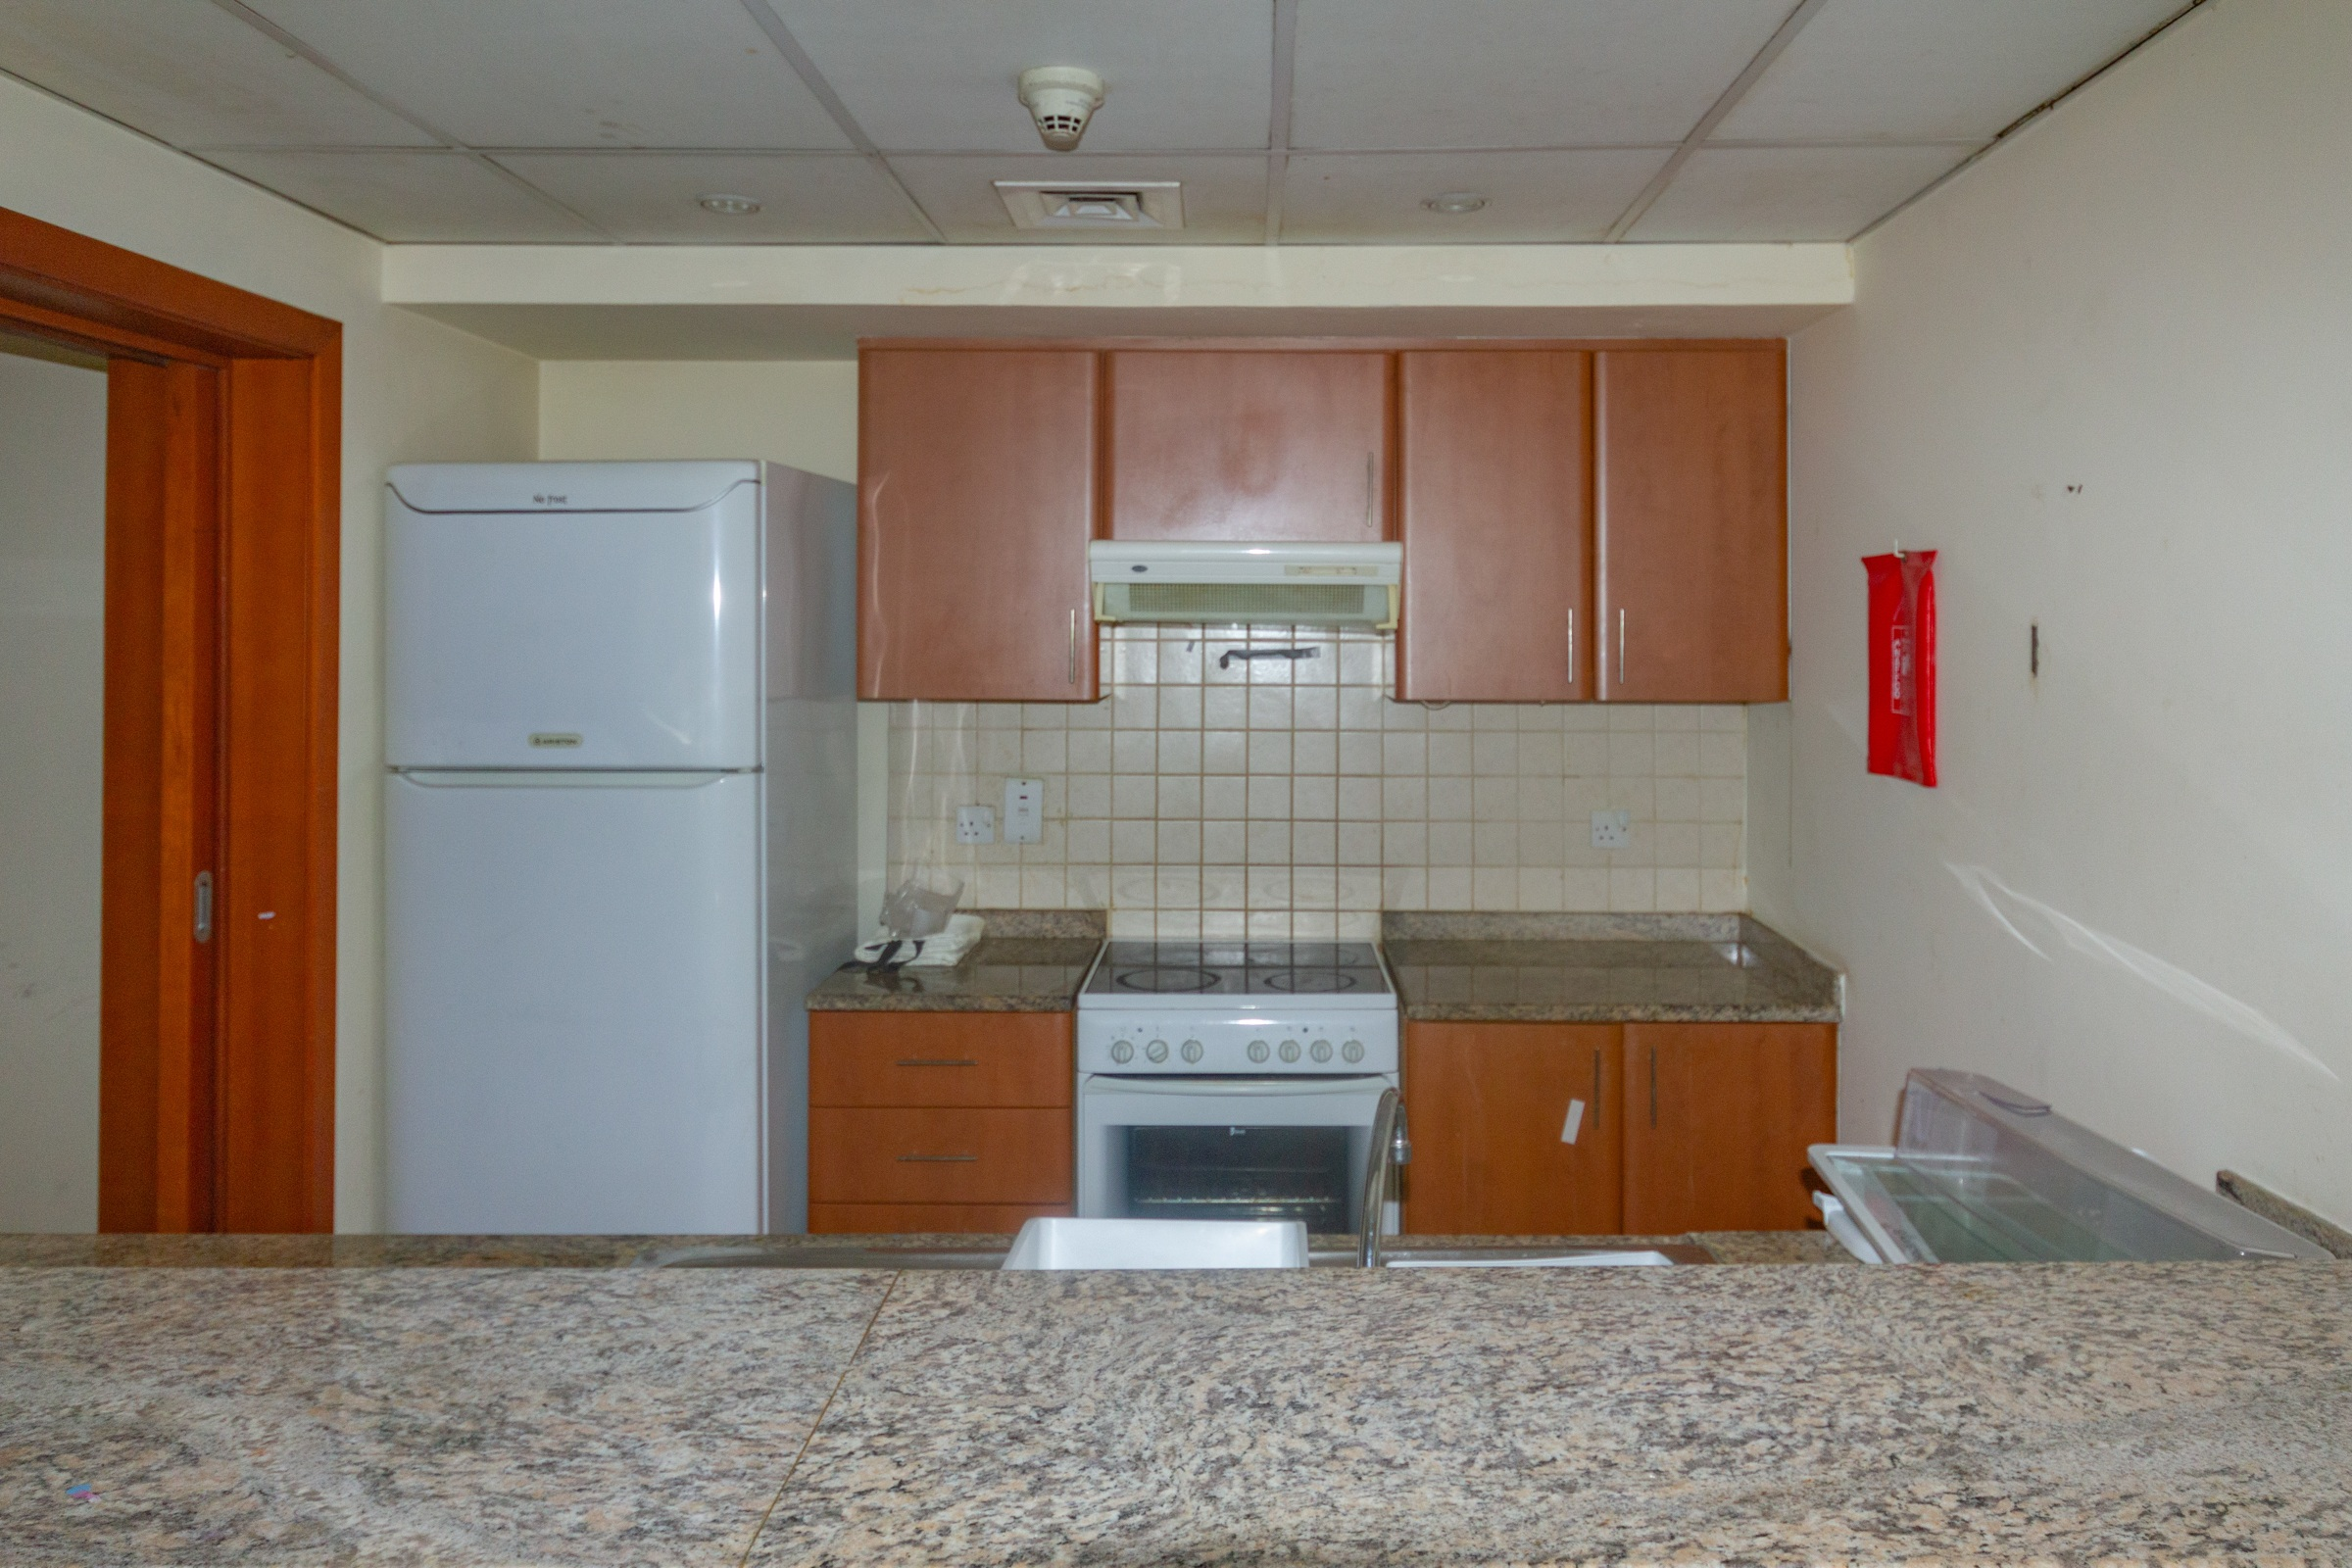 Vacant | 02 Bed Apt. | Multiple Checks |